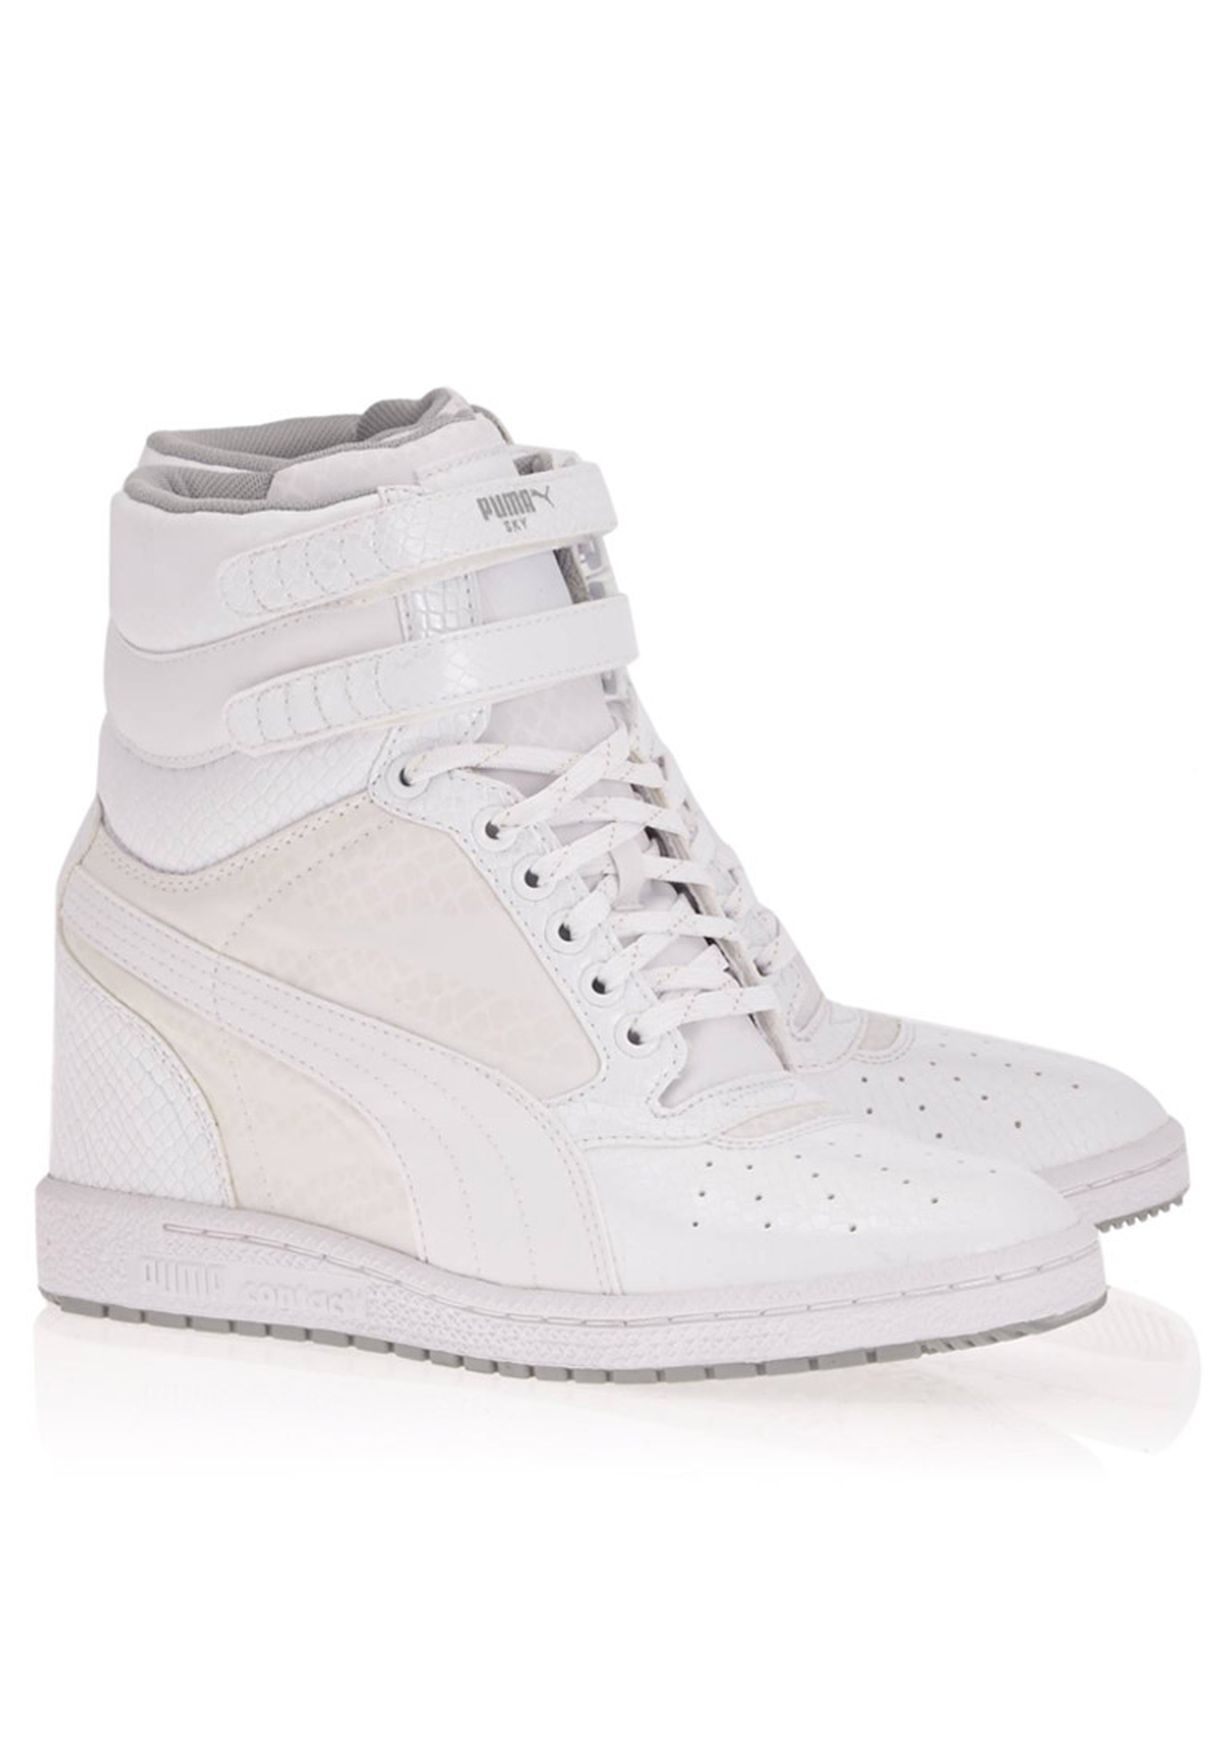 336bfb997a Shop PUMA white Sky Wedge Hi Sneakers 35687802 for Women in Kuwait ...